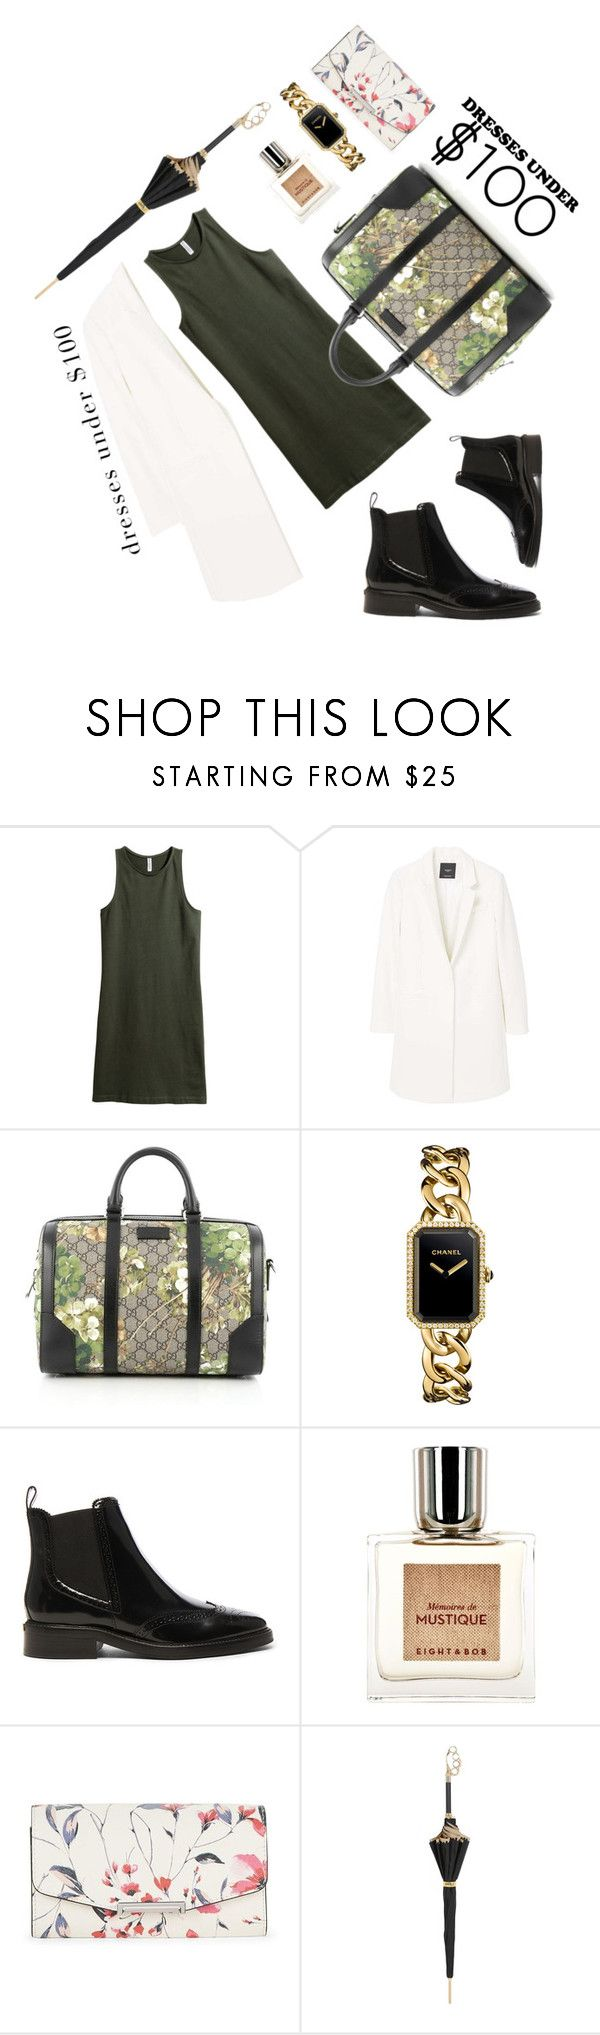 """""""Wednesday"""" by dreamclouds ❤ liked on Polyvore featuring MANGO, Gucci, Chanel, Burberry, Eight & Bob, Ivanka Trump and Pasotti Ombrelli"""